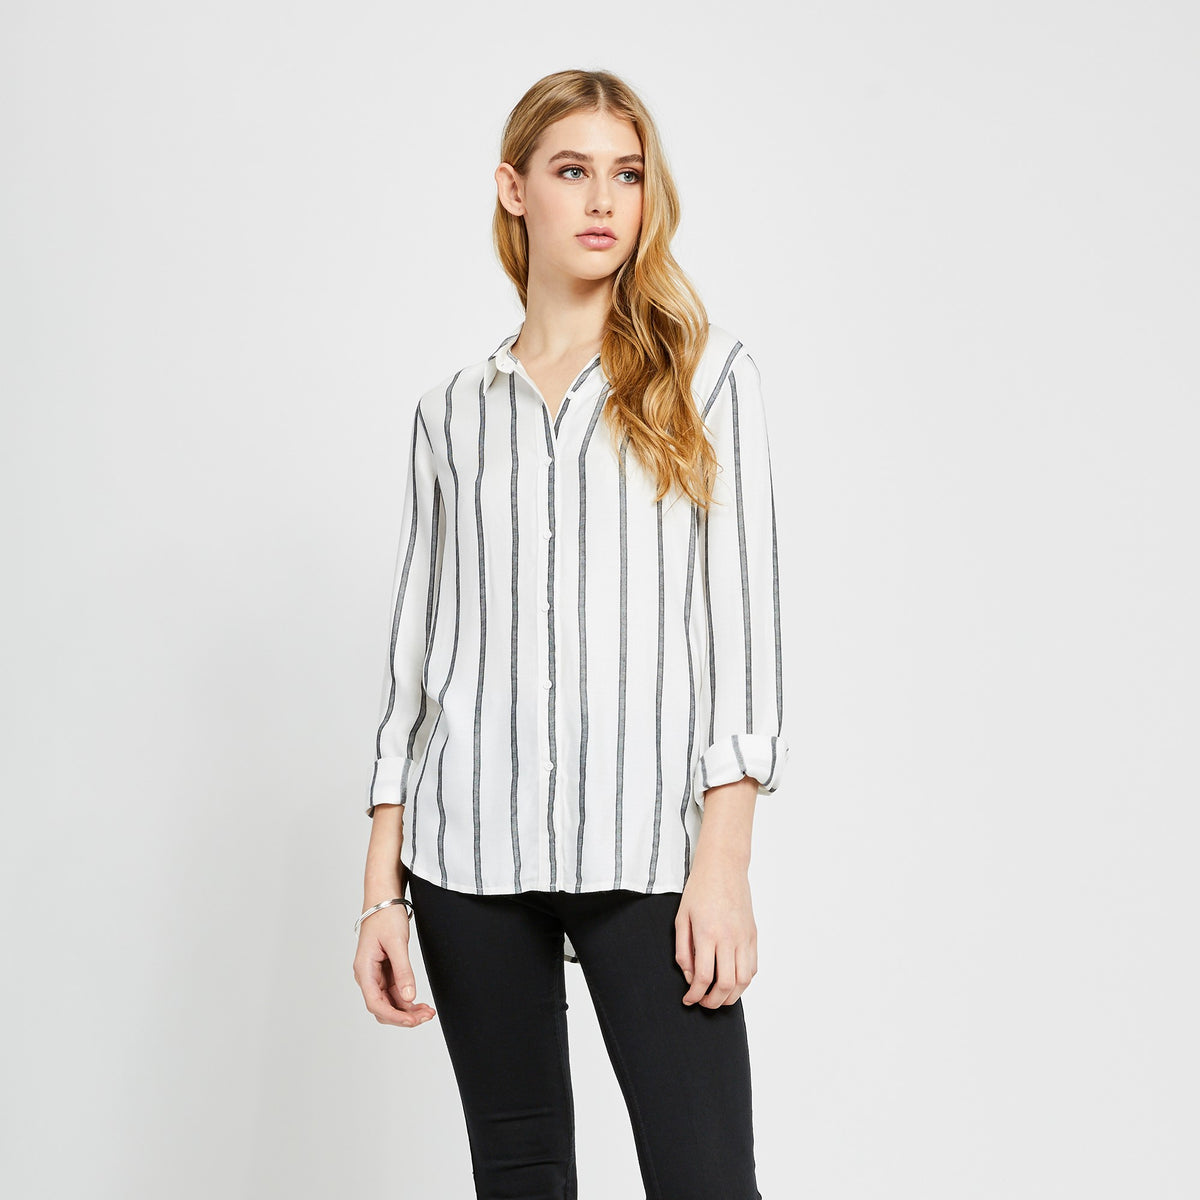 GENTLE FAWN Nicole Top